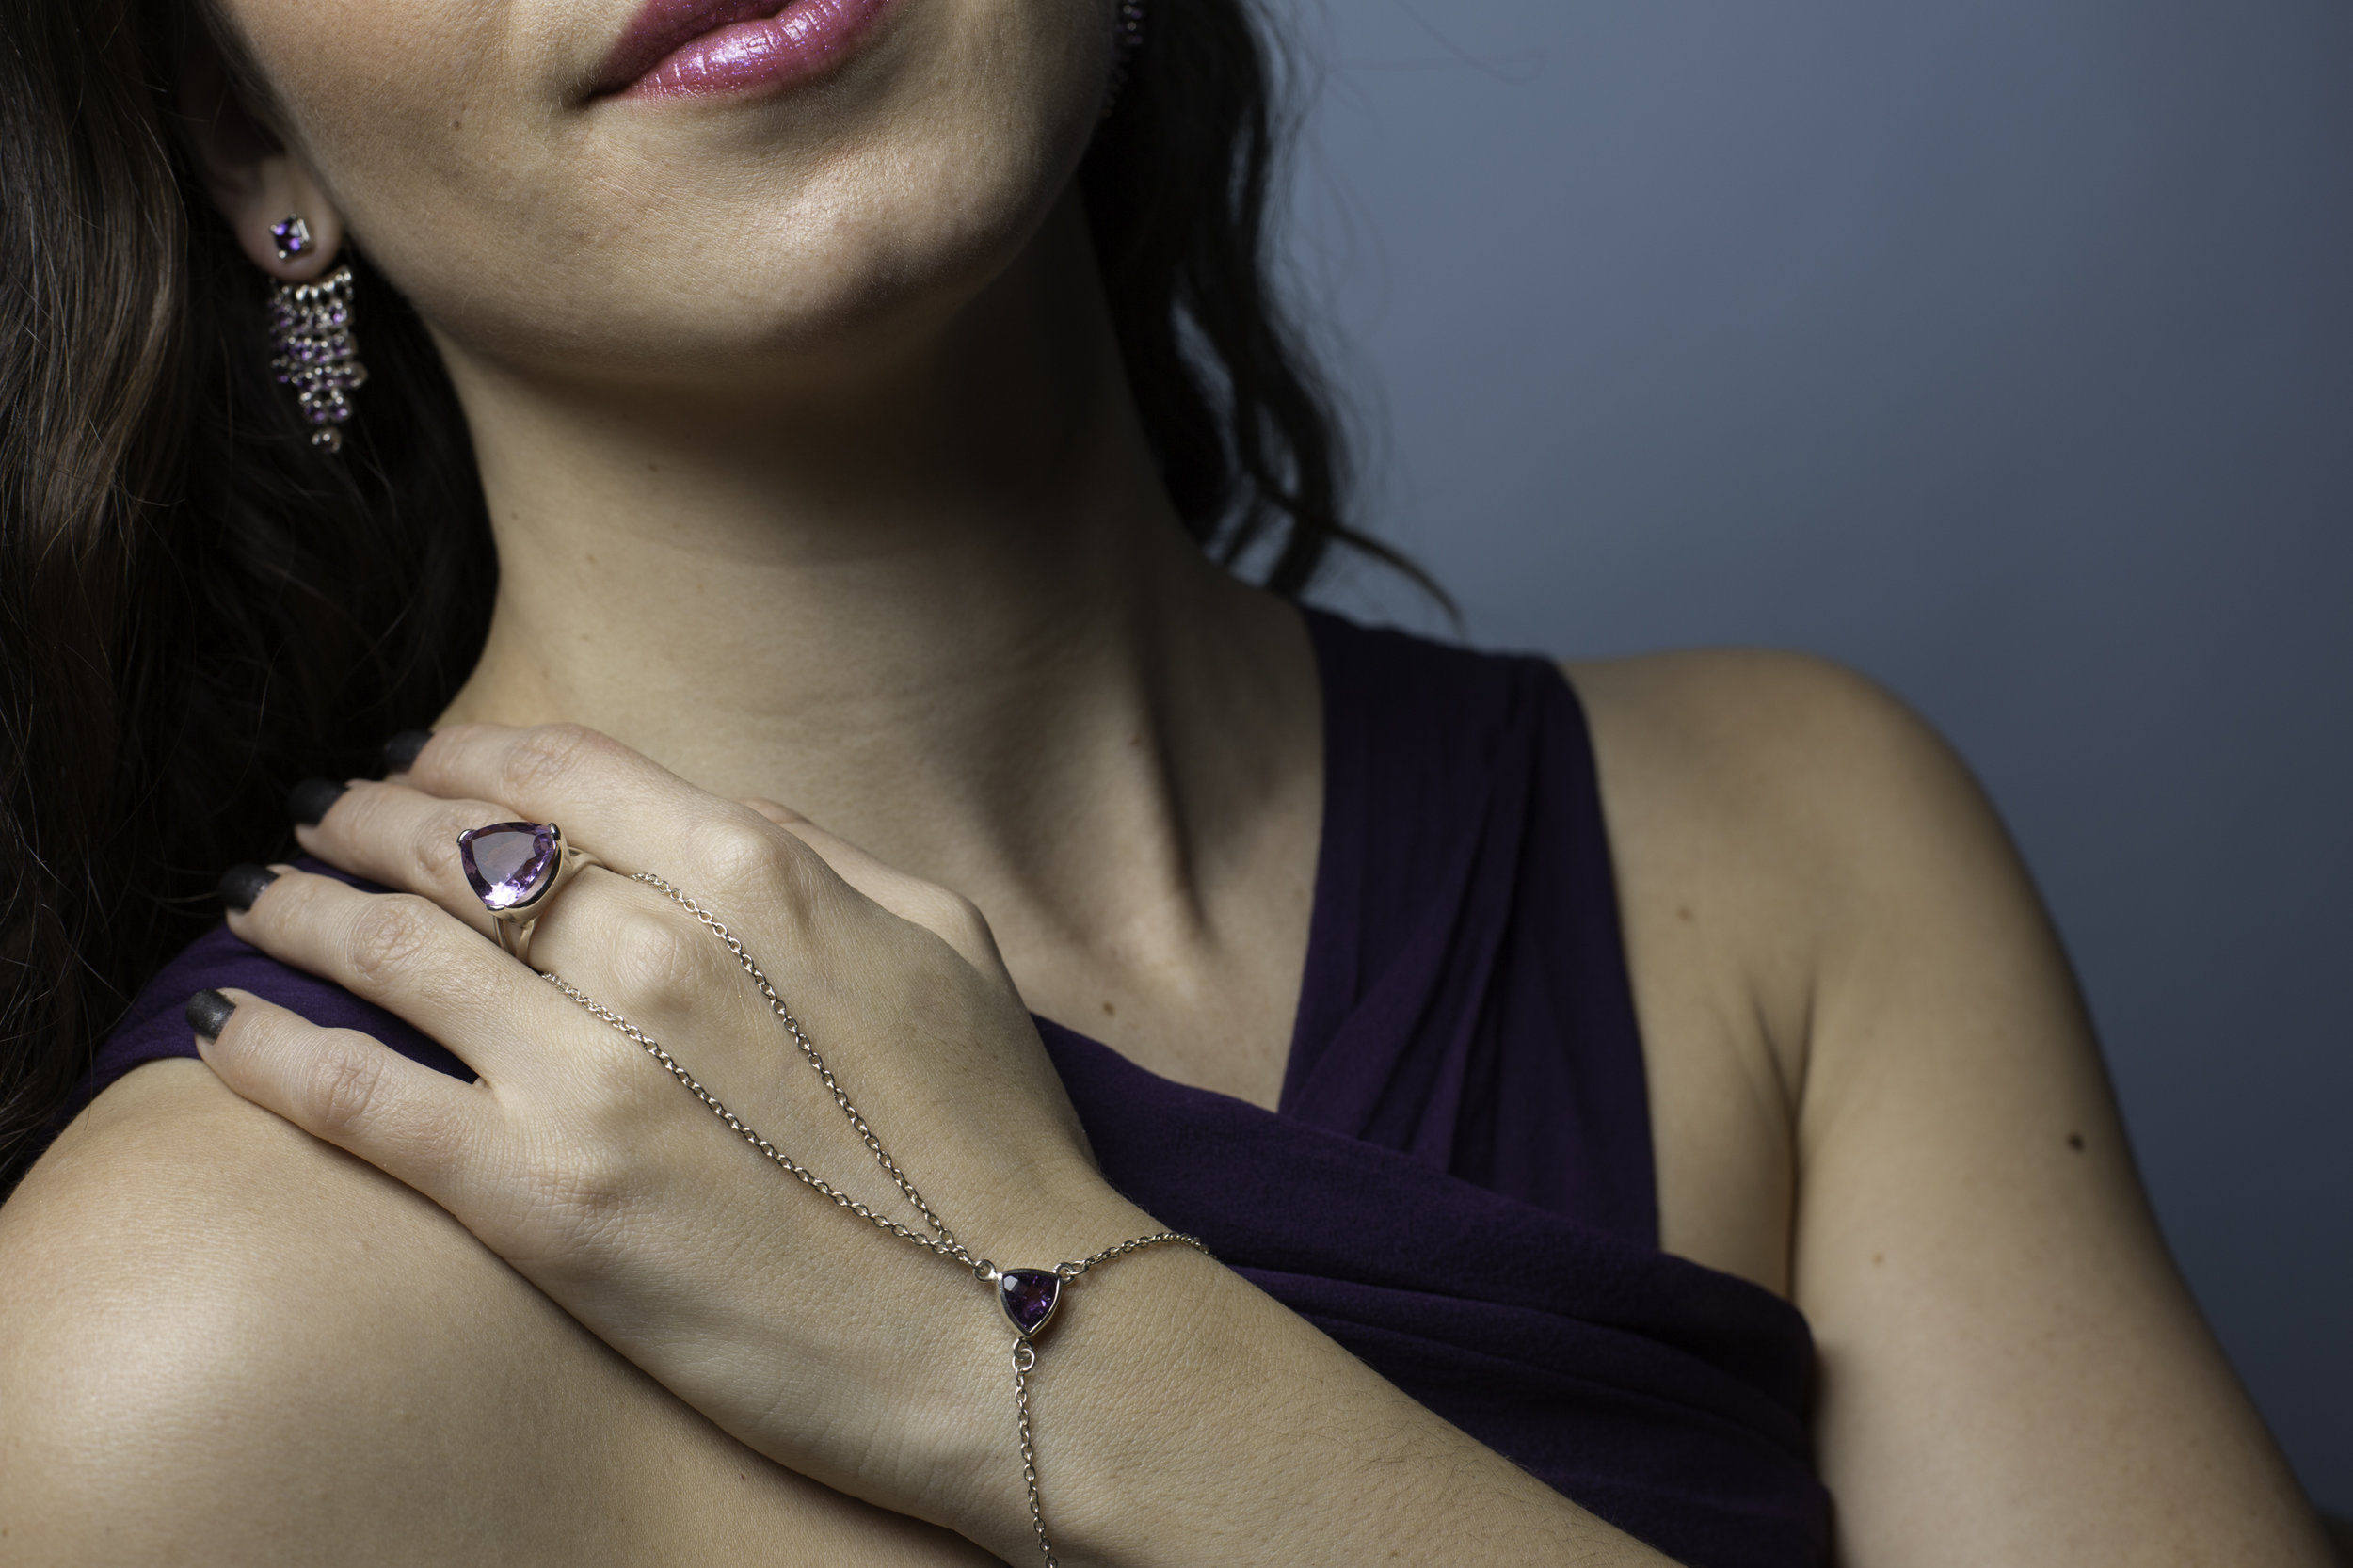 Wearing Made in Earth Collection Amethyst bracelet and ring as well as earrings. Please see below for the healing and energetic properties of Amethyst.